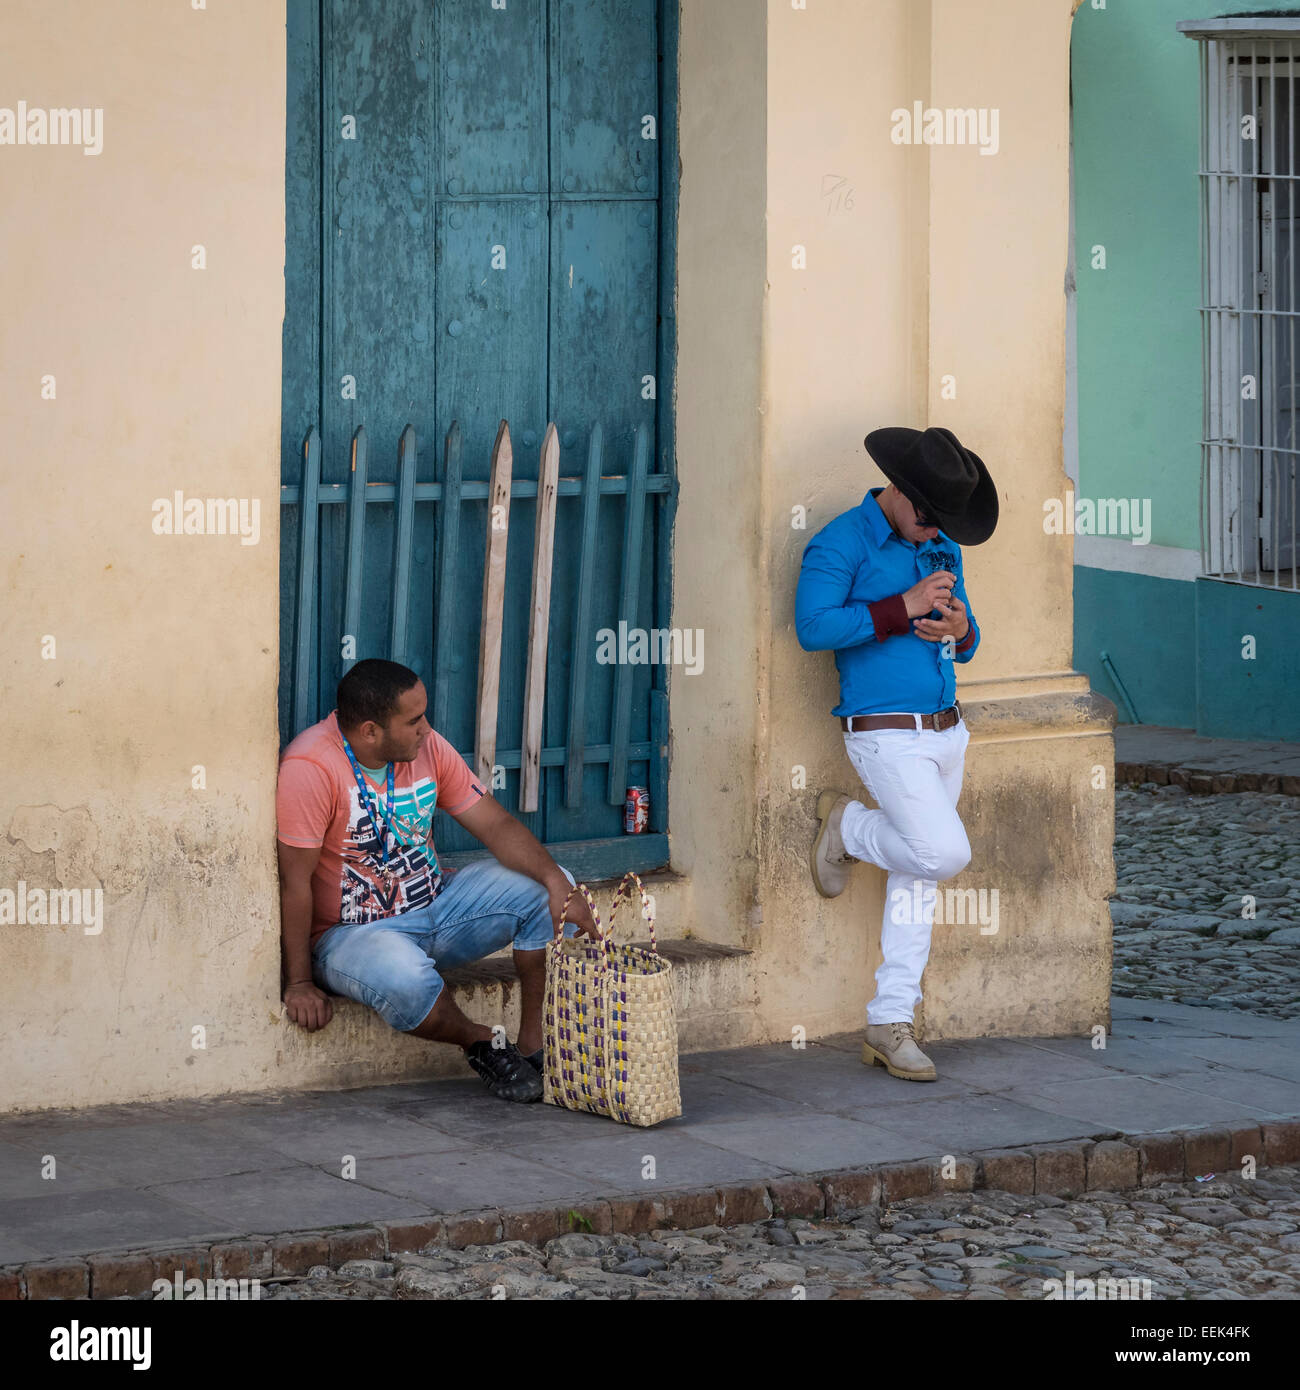 Two men on a street corner in Trinidad, Cuba. One seated and one standing with hat on. Stock Photo